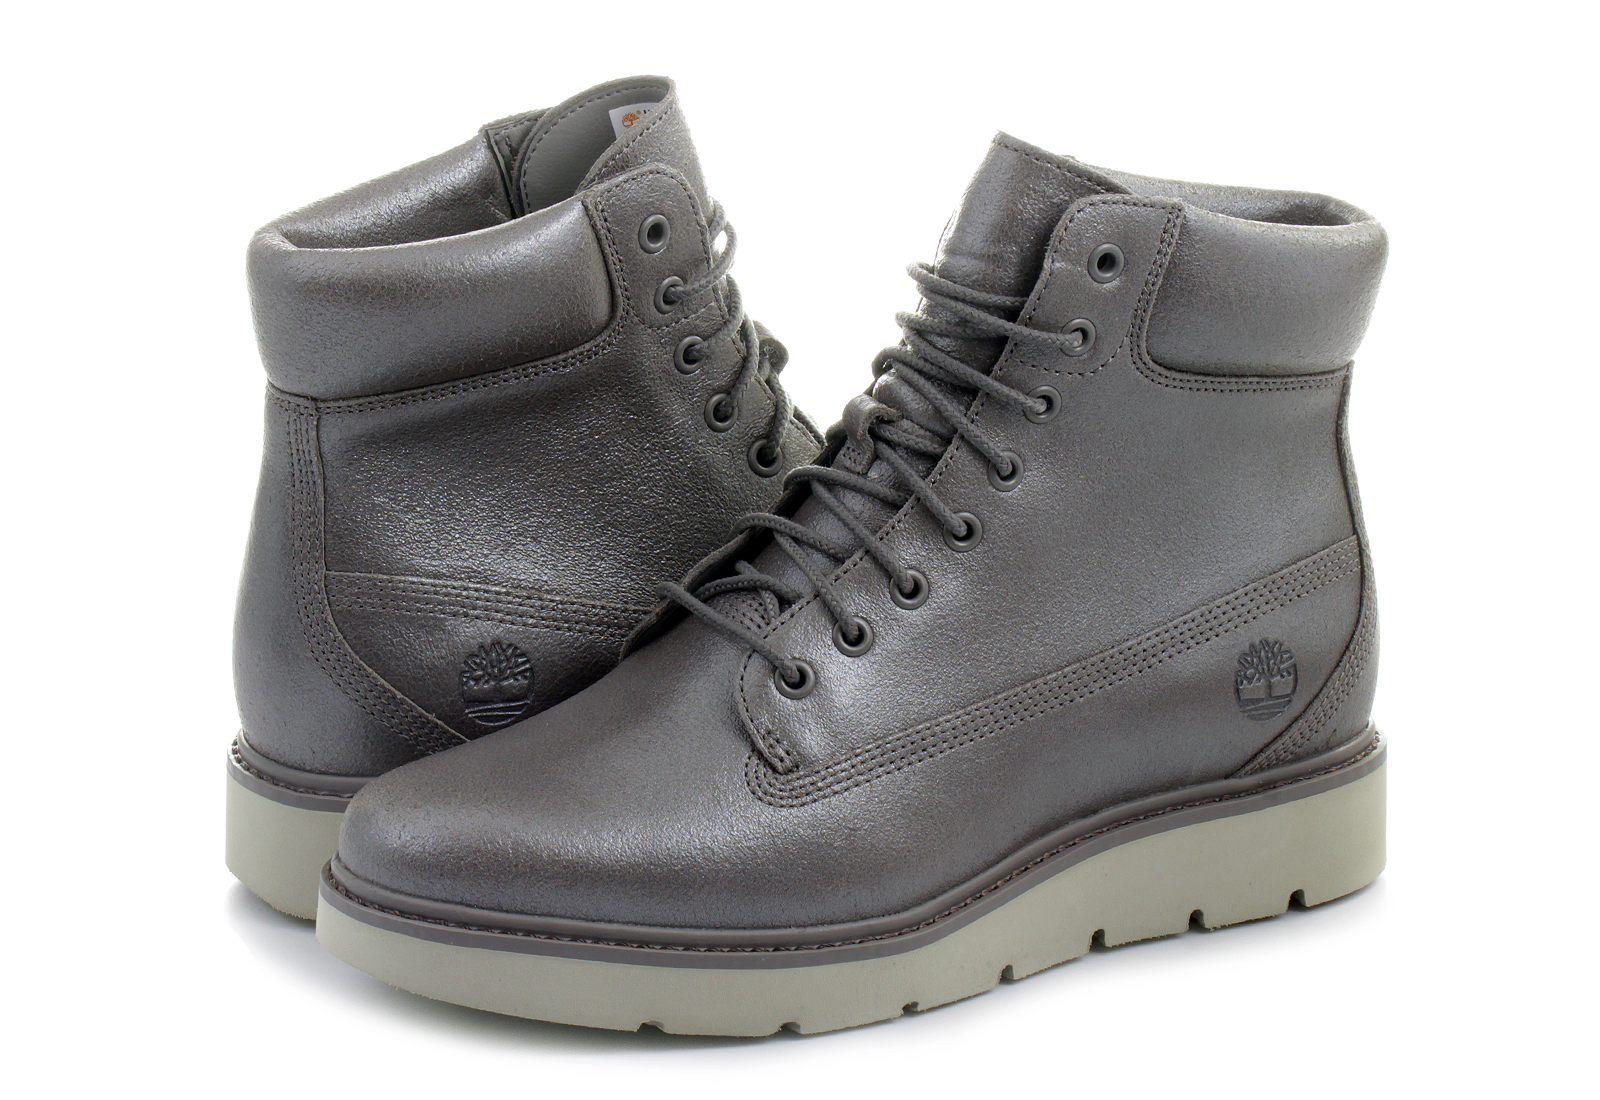 Timberland Topánky - Kenniston 6in Lace - a1irn-gry - Tenisky ... bc2320237a9